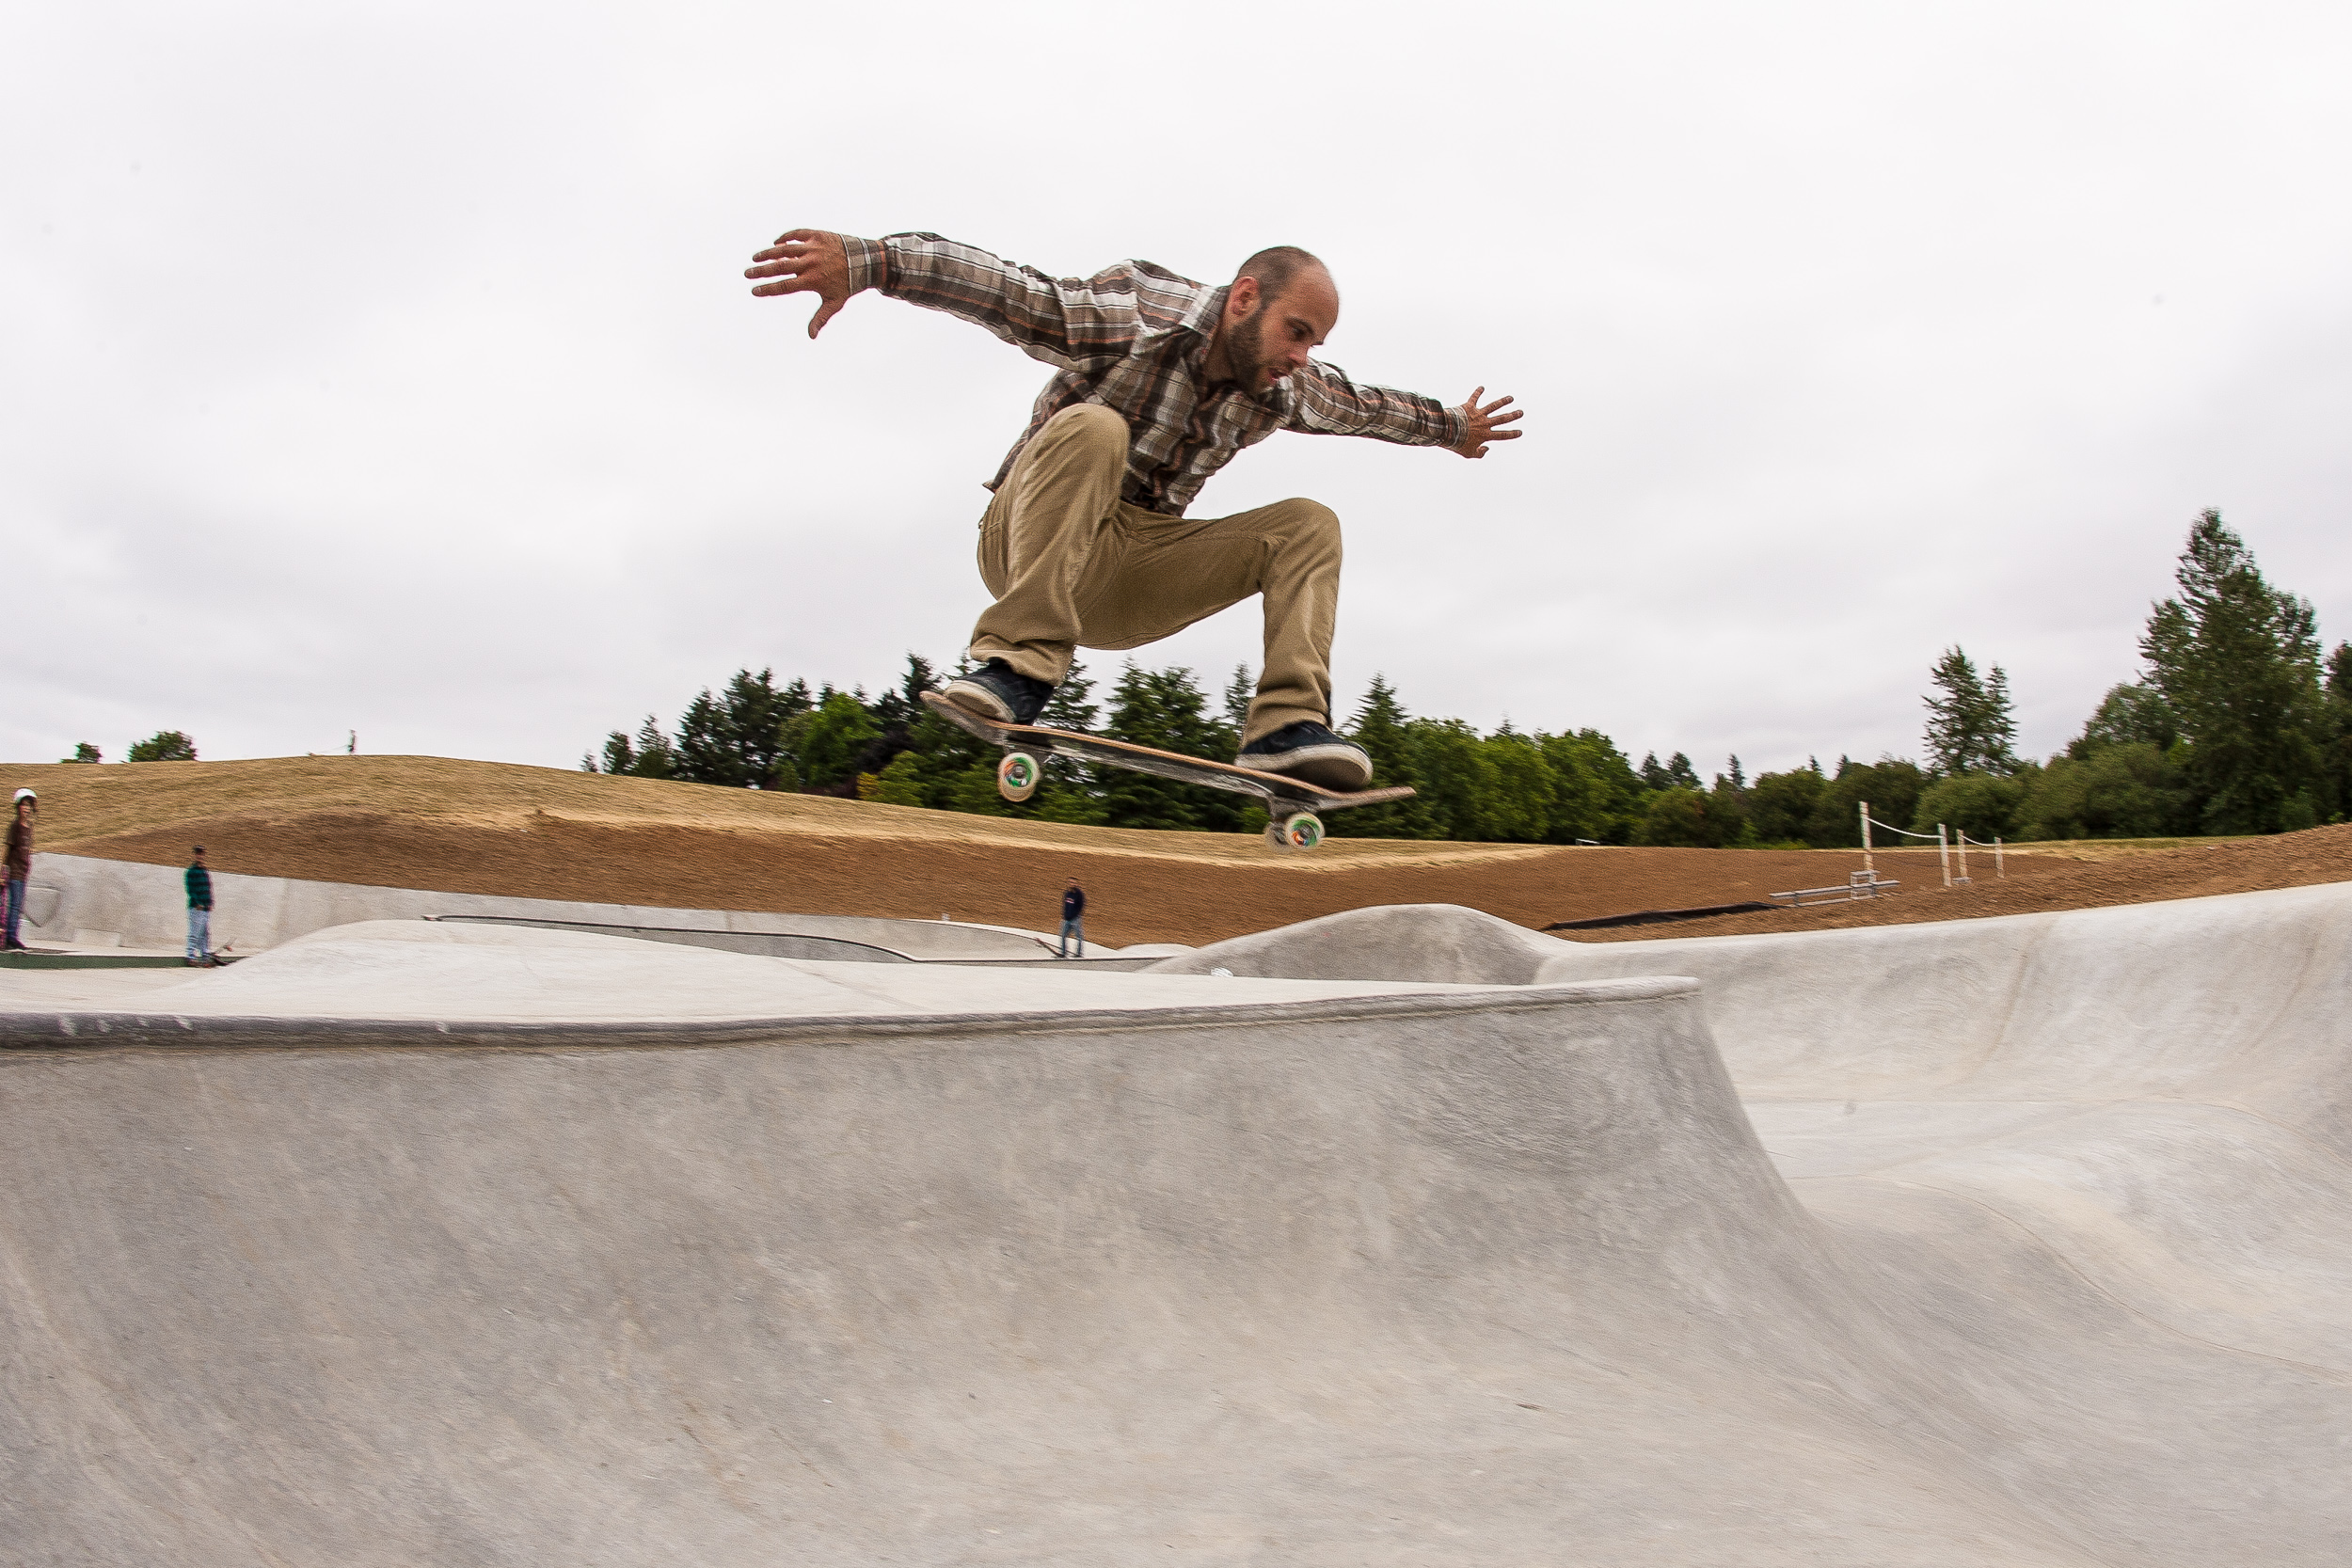 Once the fencing came down, Ben Krahn was amongst the first of Portland's skateboarders to enjoy varied terrain of Gabriel Park's skatepark.